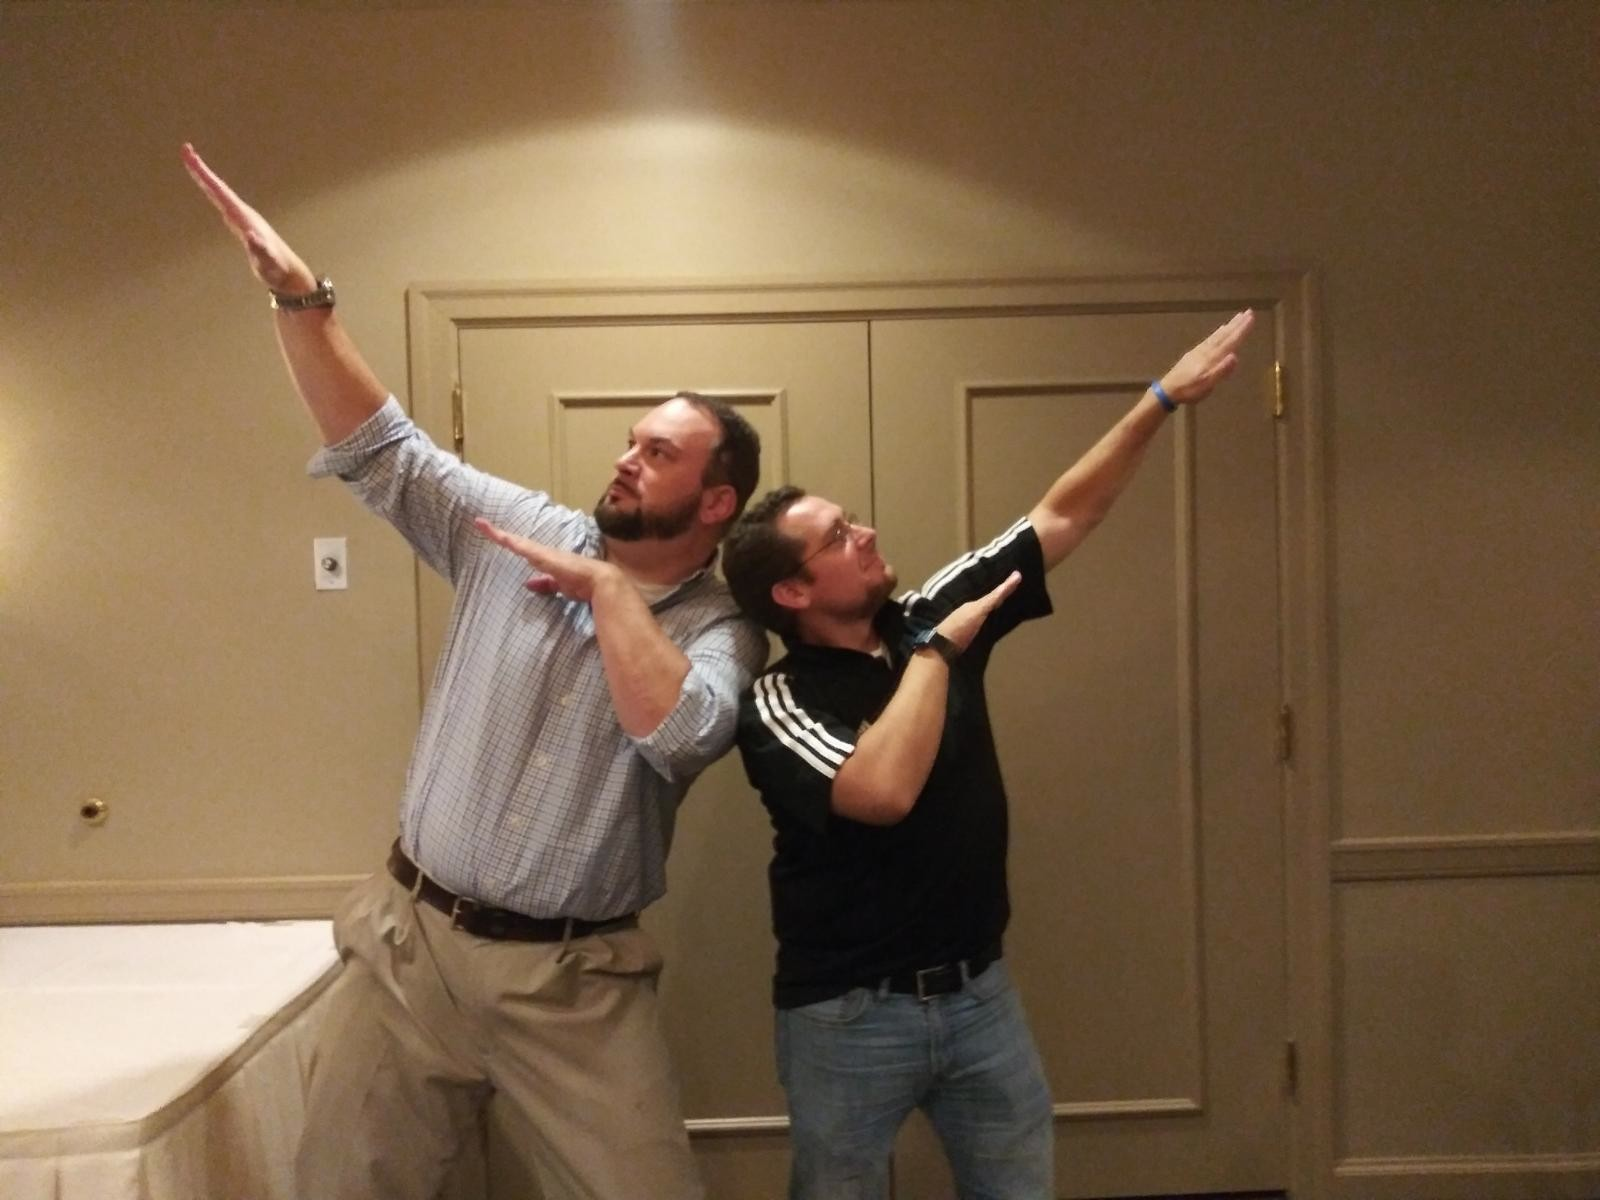 My best friend, David, and me—just doing what we do at his wedding rehearsal dinner back in October.